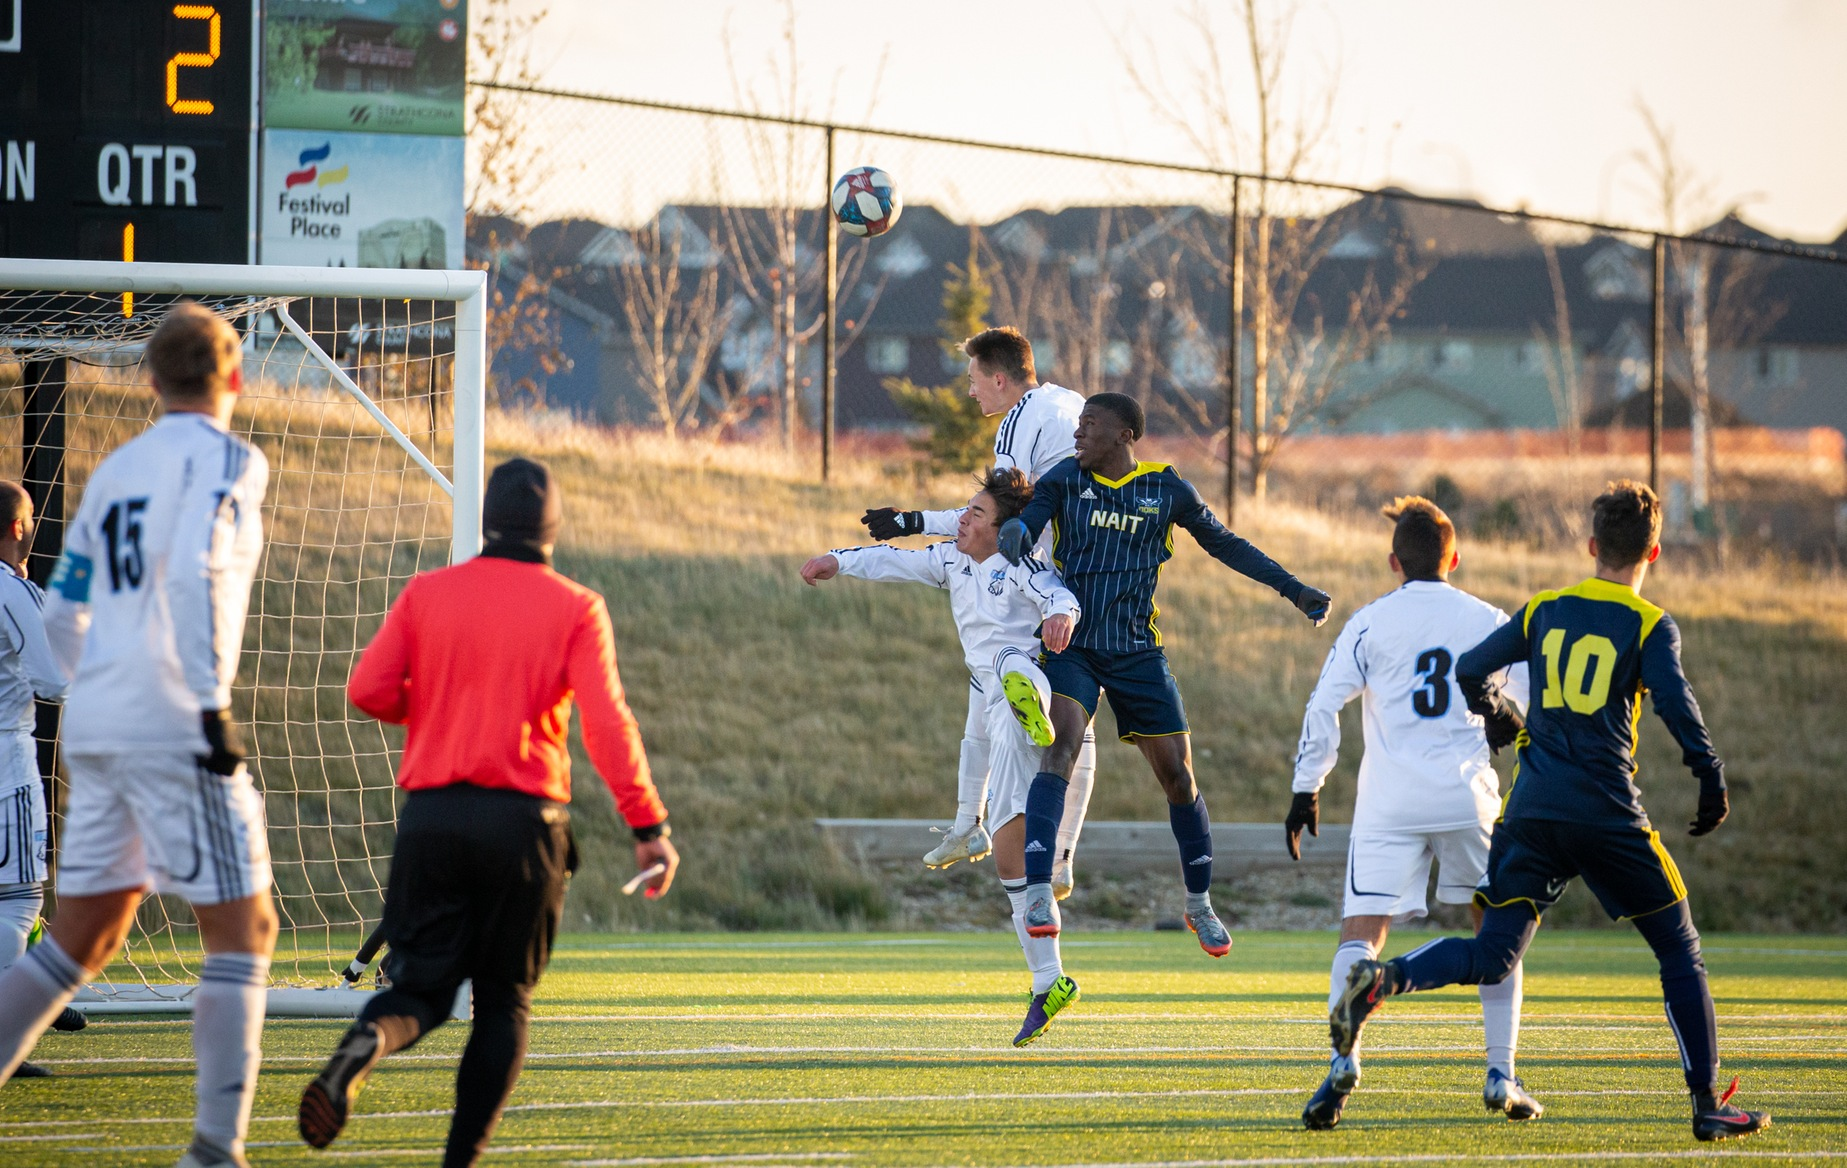 Ooks fall to Kodiaks in semi-final